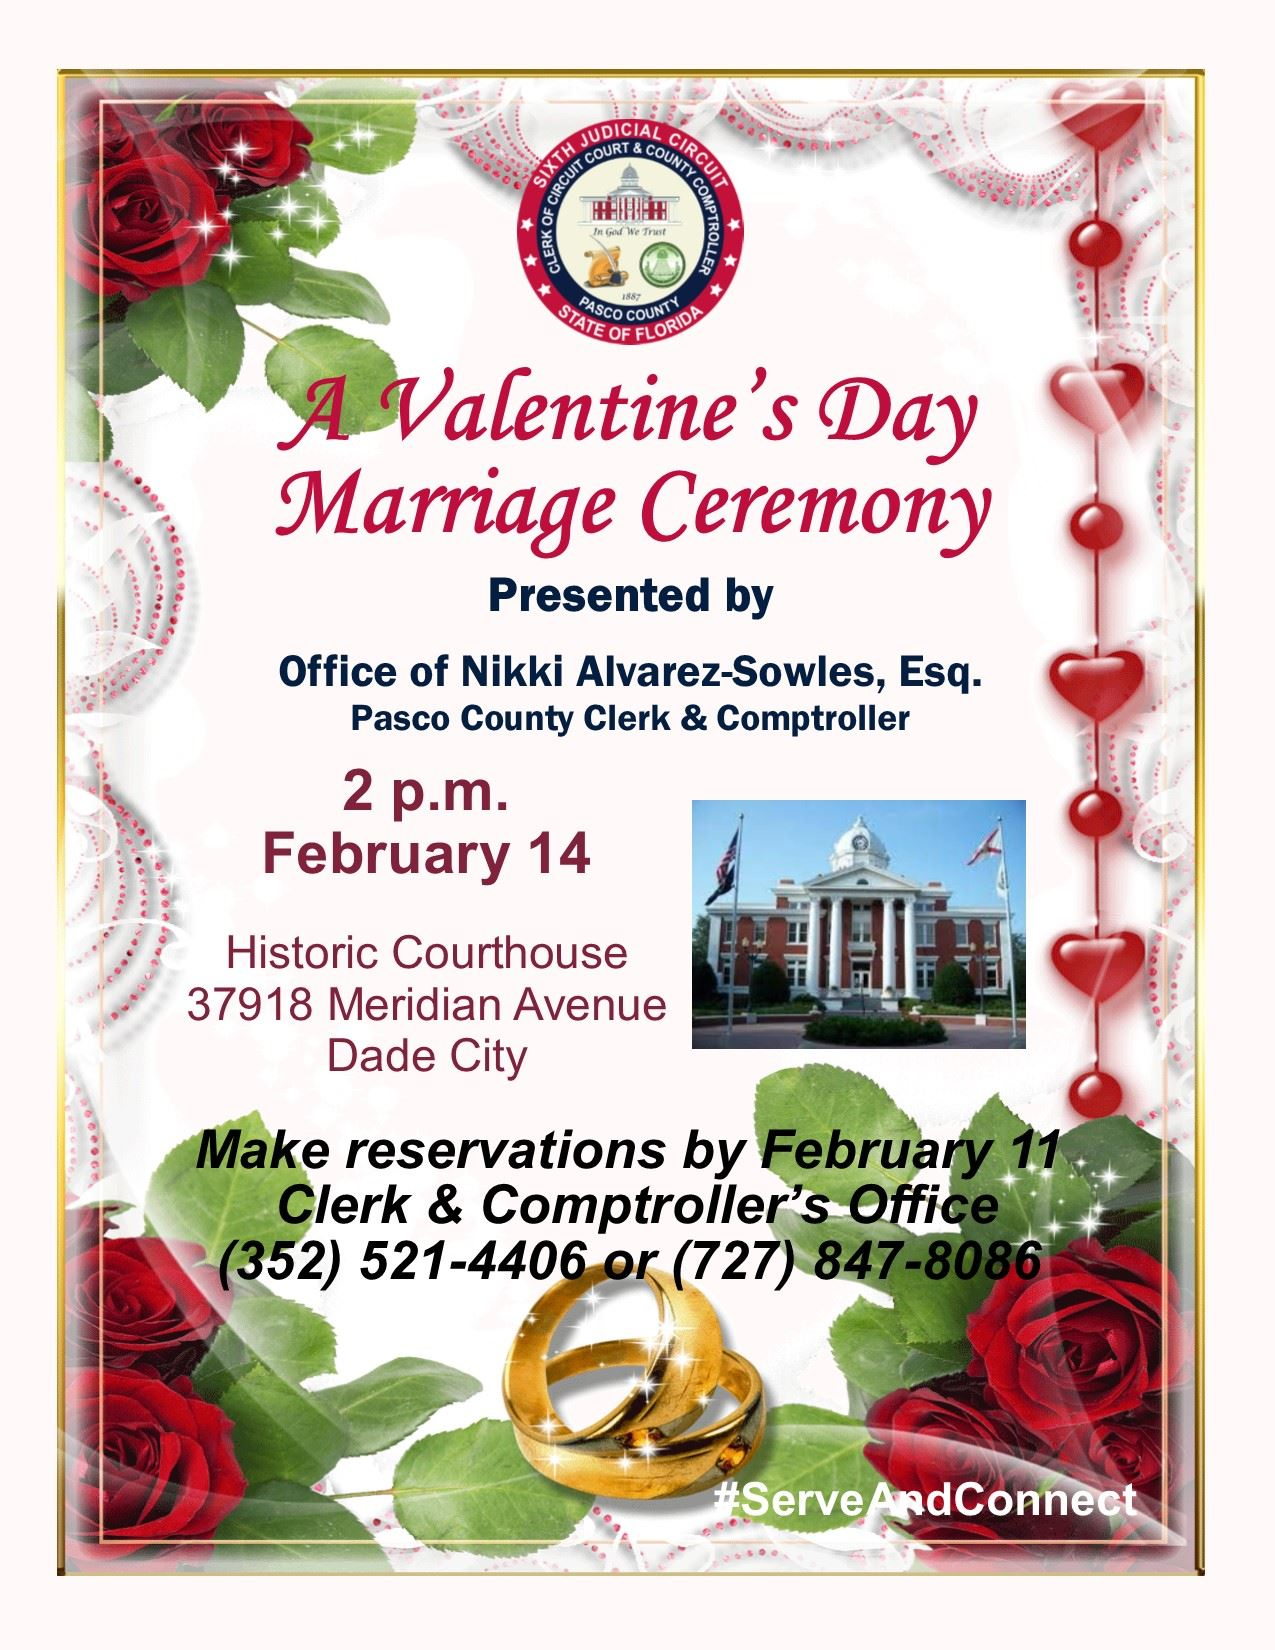 Roses, hearts and red beads frame Valentine&#39s Day marriage flyer. Courthouse, gold rings displaye